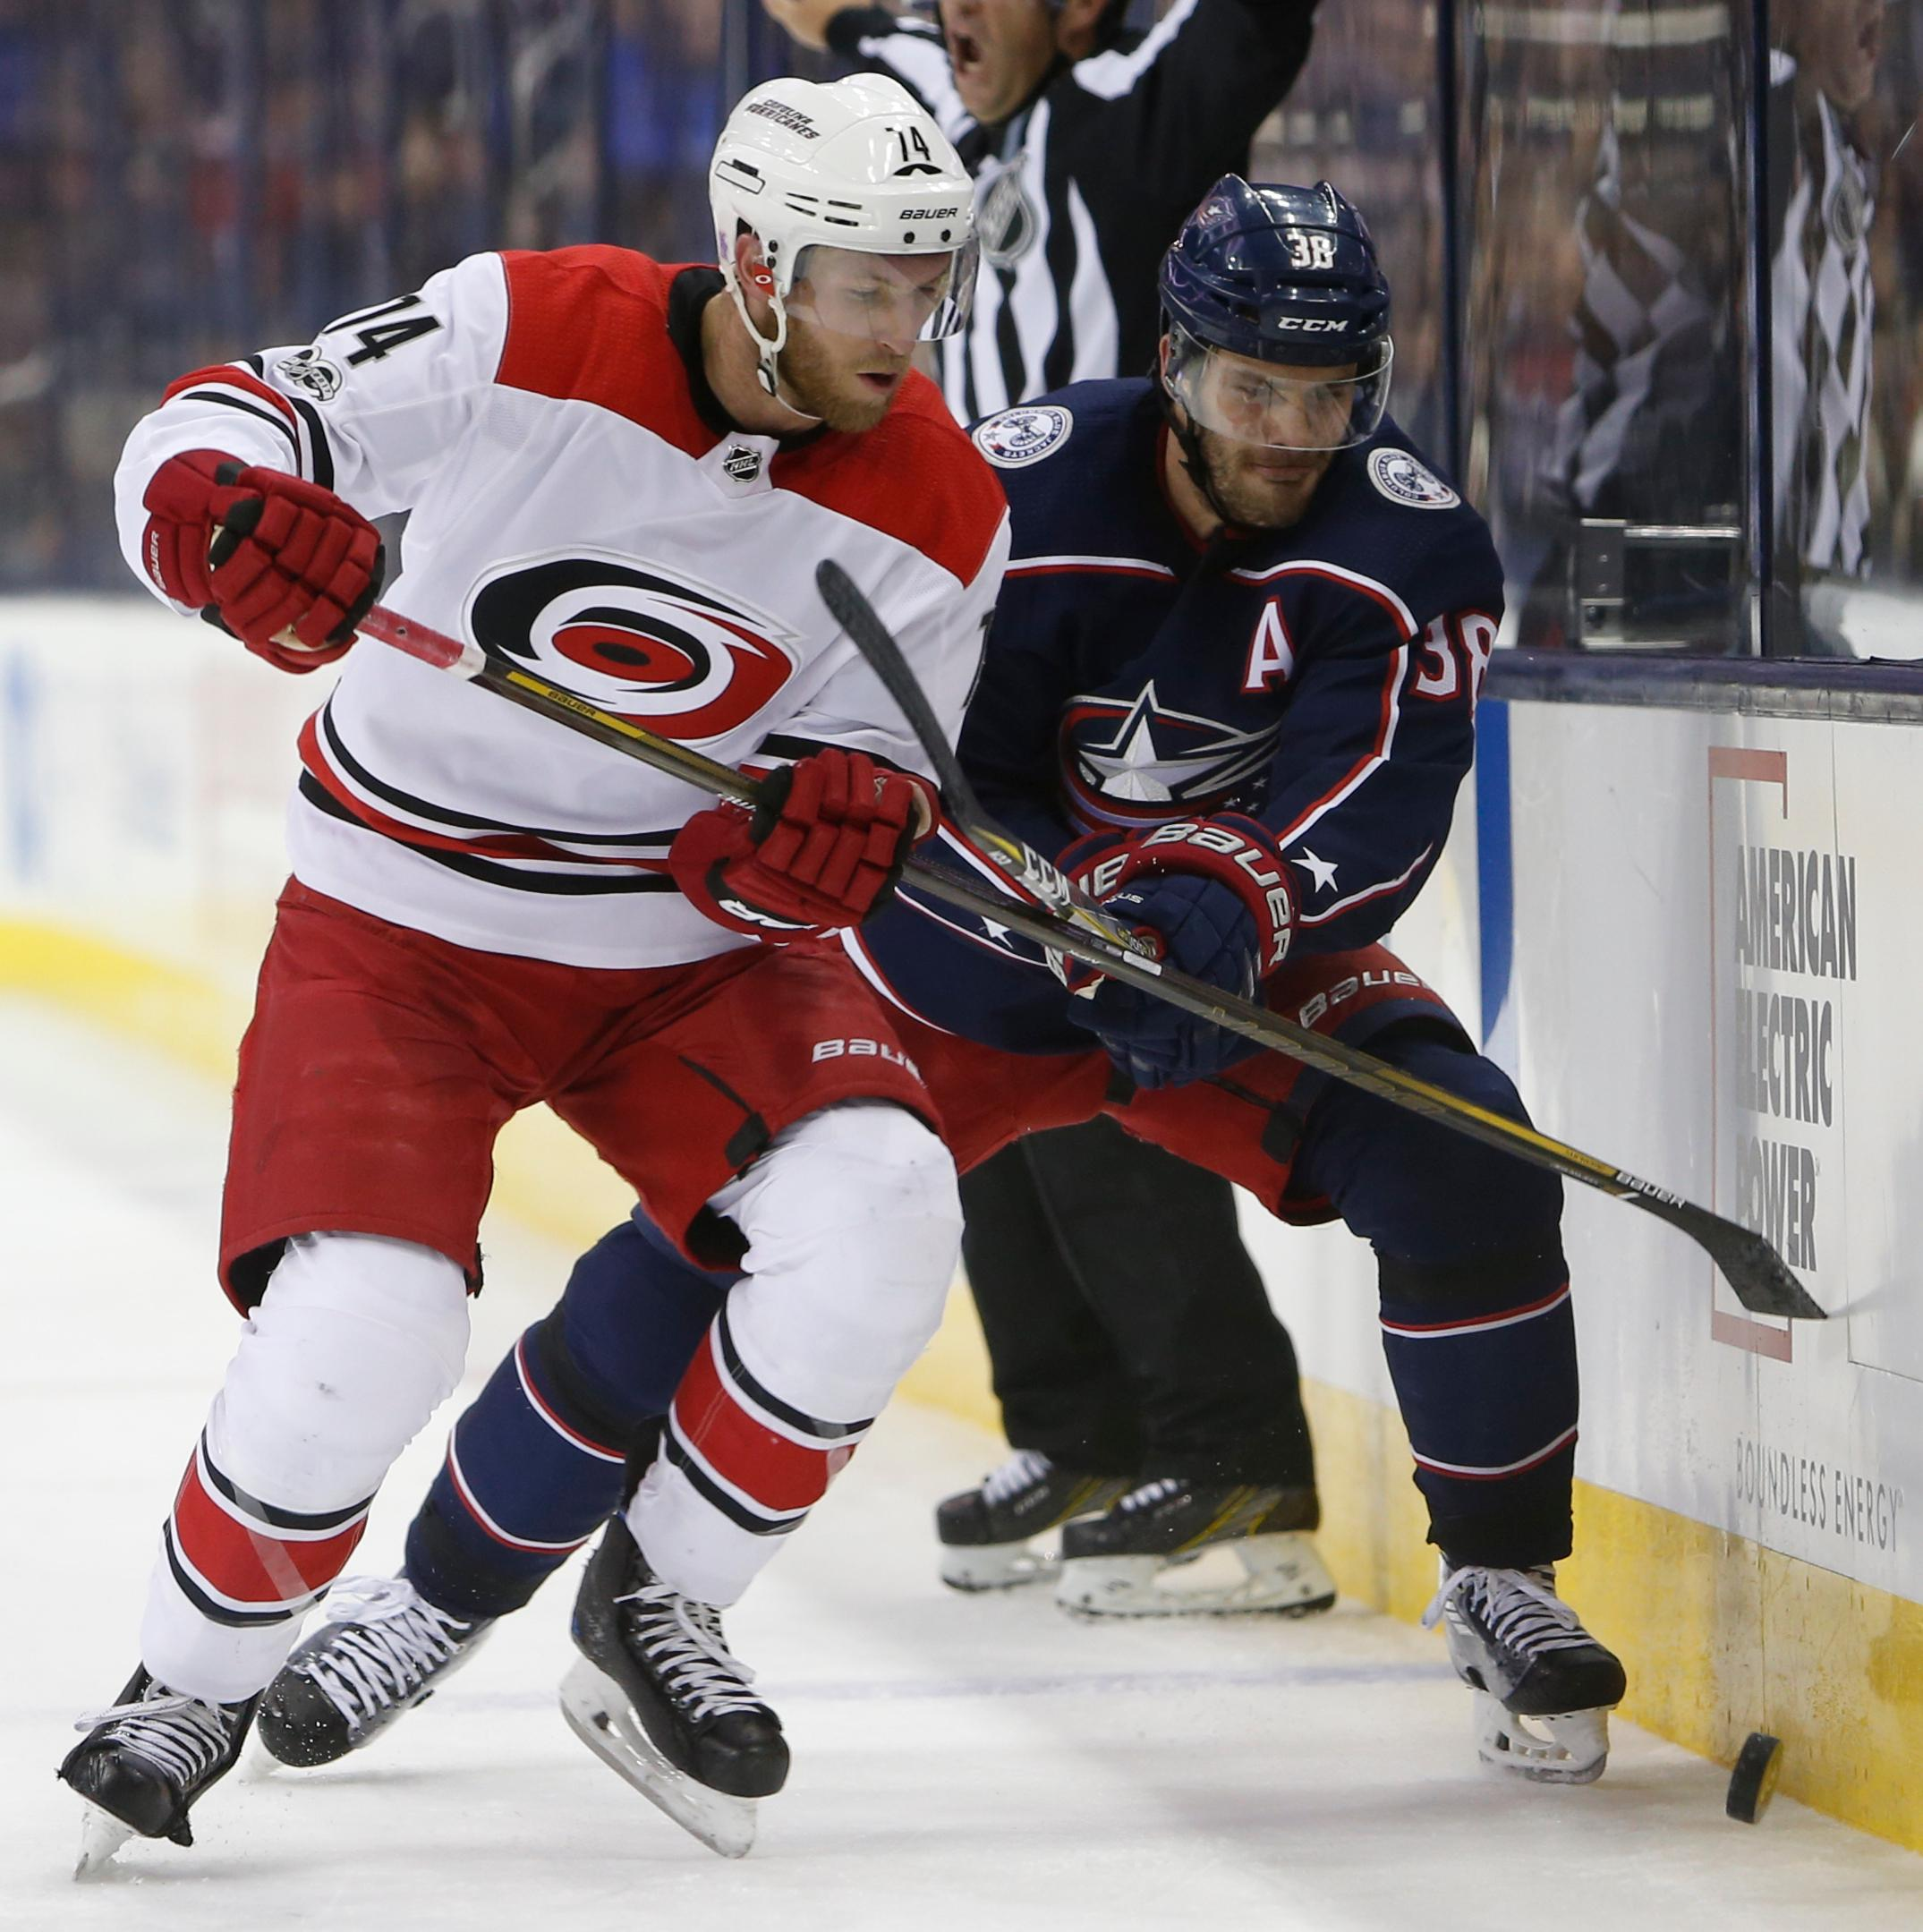 Carolina Hurricanes' Jaccob Slavin, left, and Columbus Blue Jackets' Boone Jenner scrap for a loose puck during the second period of an NHL hockey game Friday, Nov. 10, 2017, in Columbus, Ohio. (AP Photo/Jay LaPrete)